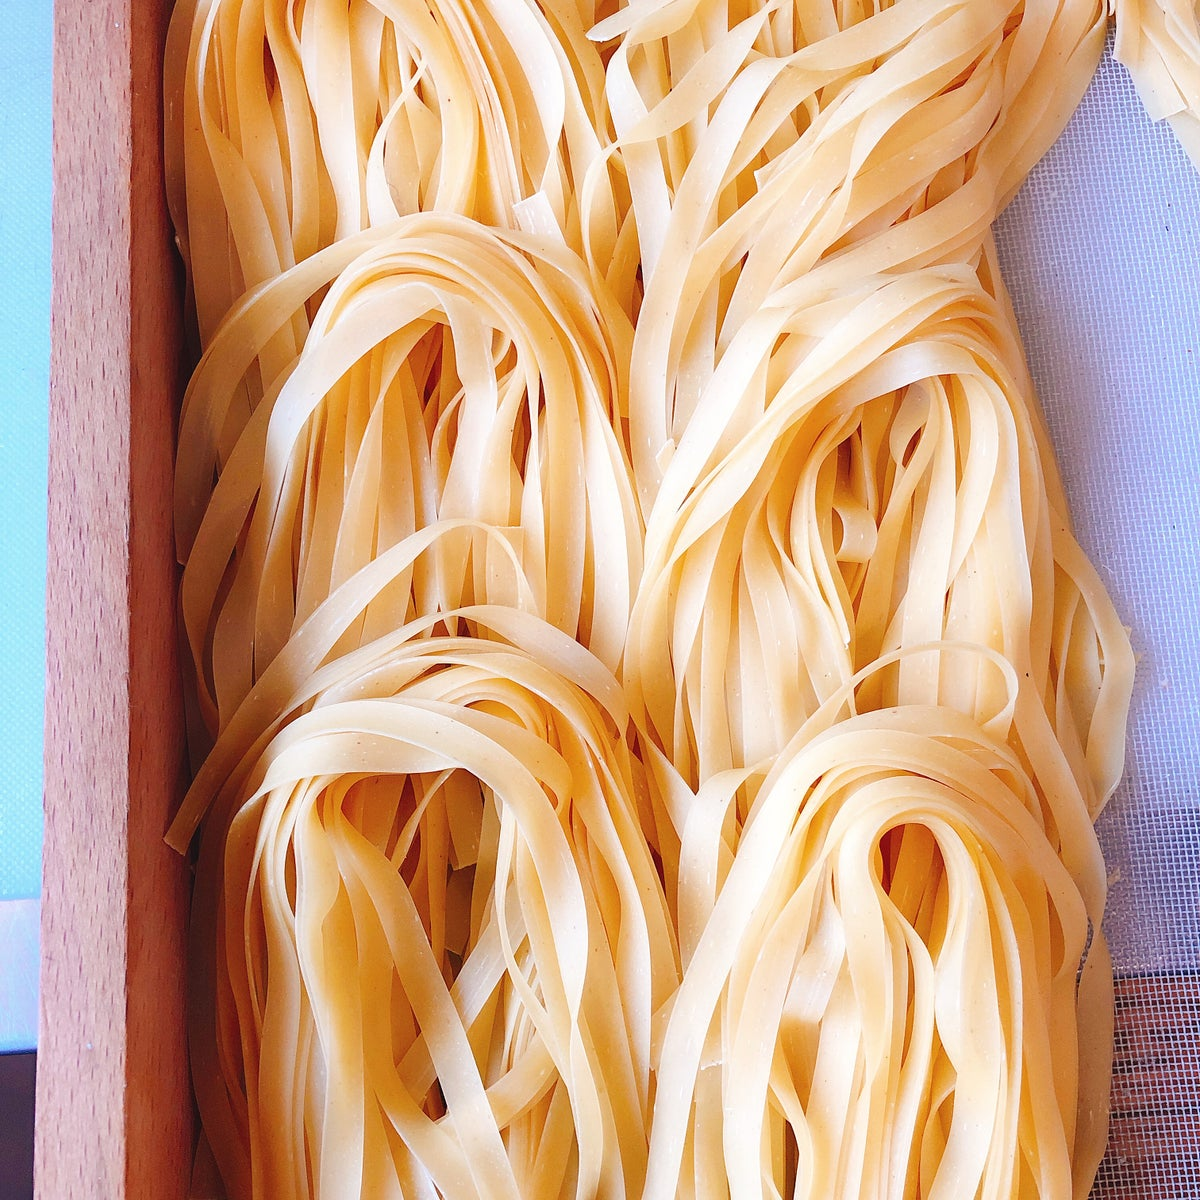 Fresh Pasta and sauces